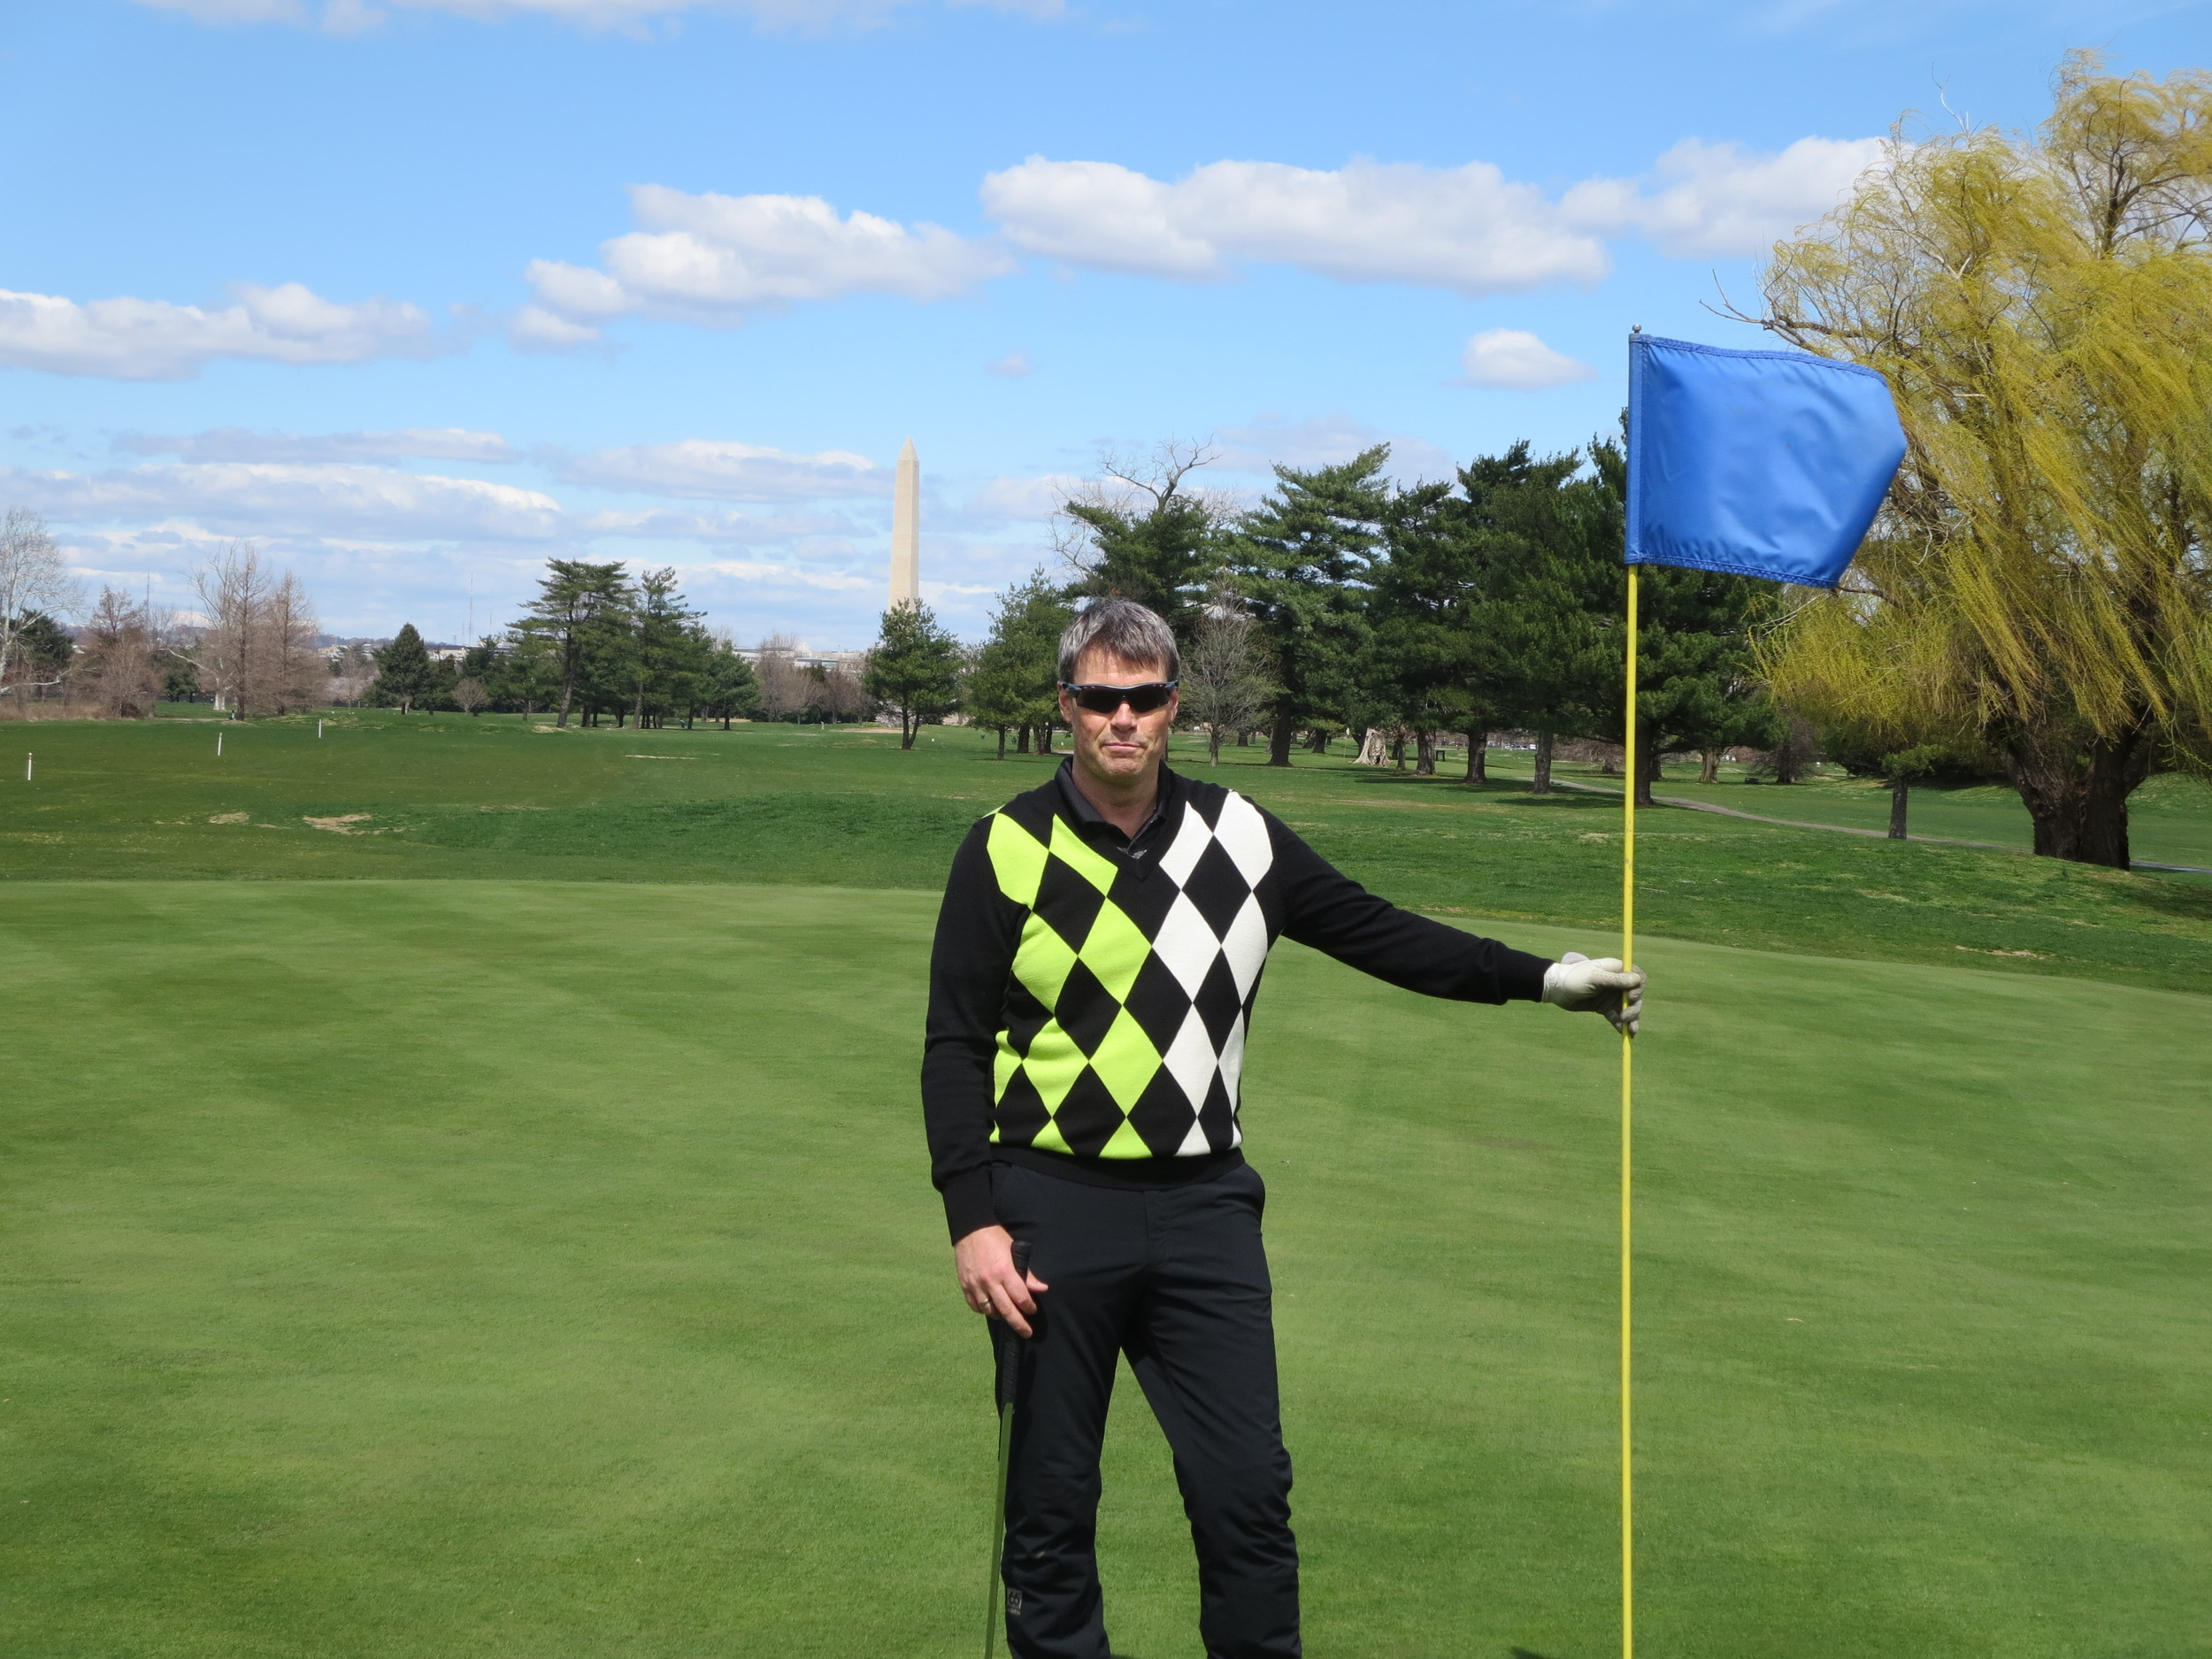 Golf with the Washington Monument in the background